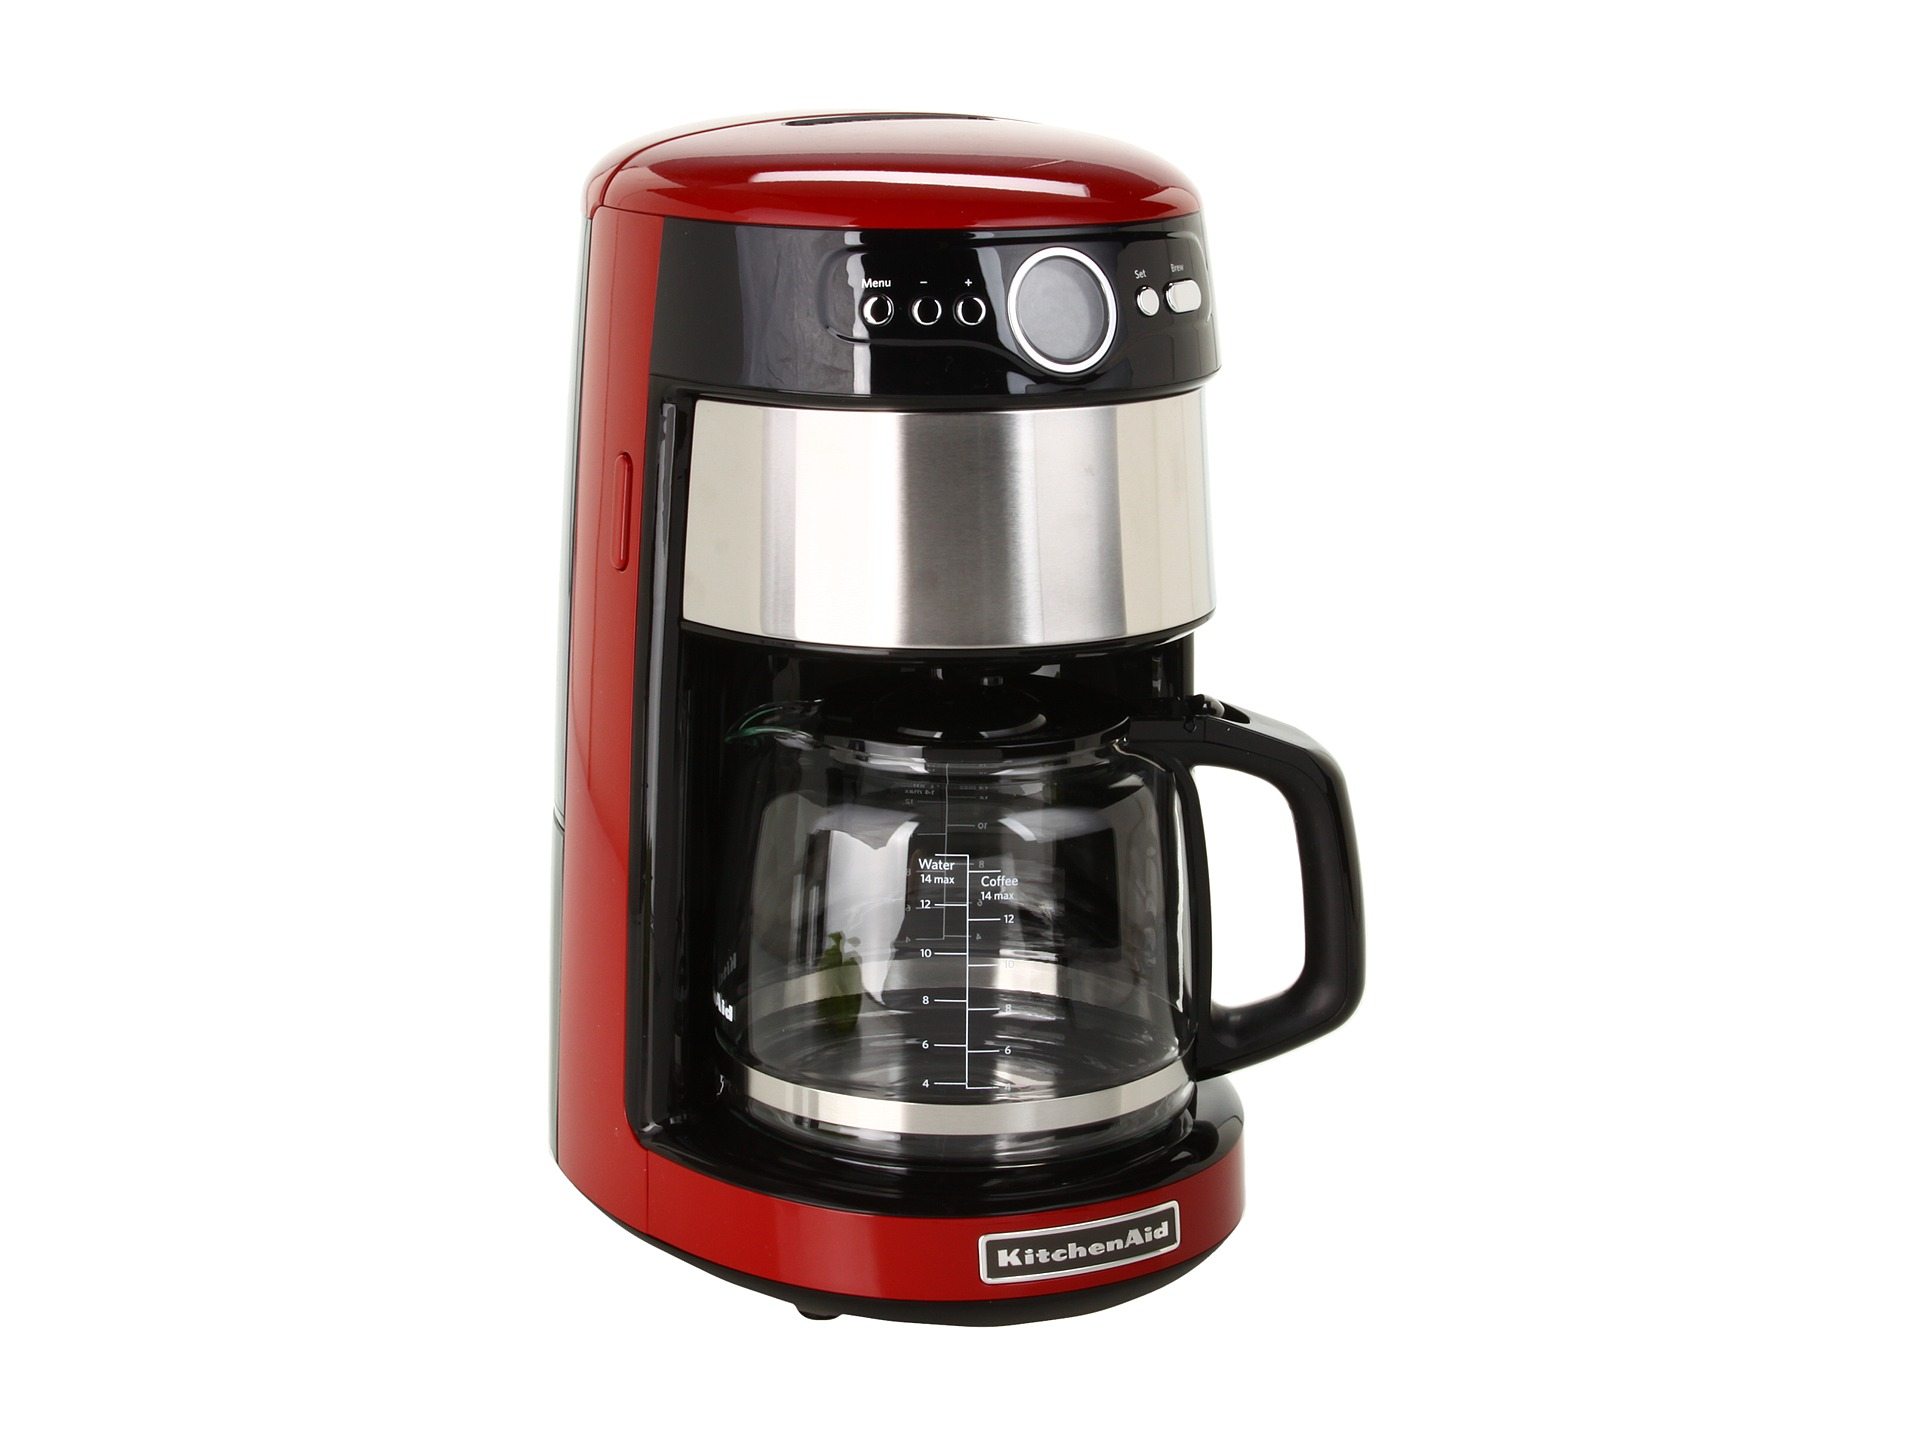 Kitchenaid Coffee Maker # Deptis.com > Inspirierendes Design fur Wohnmobel